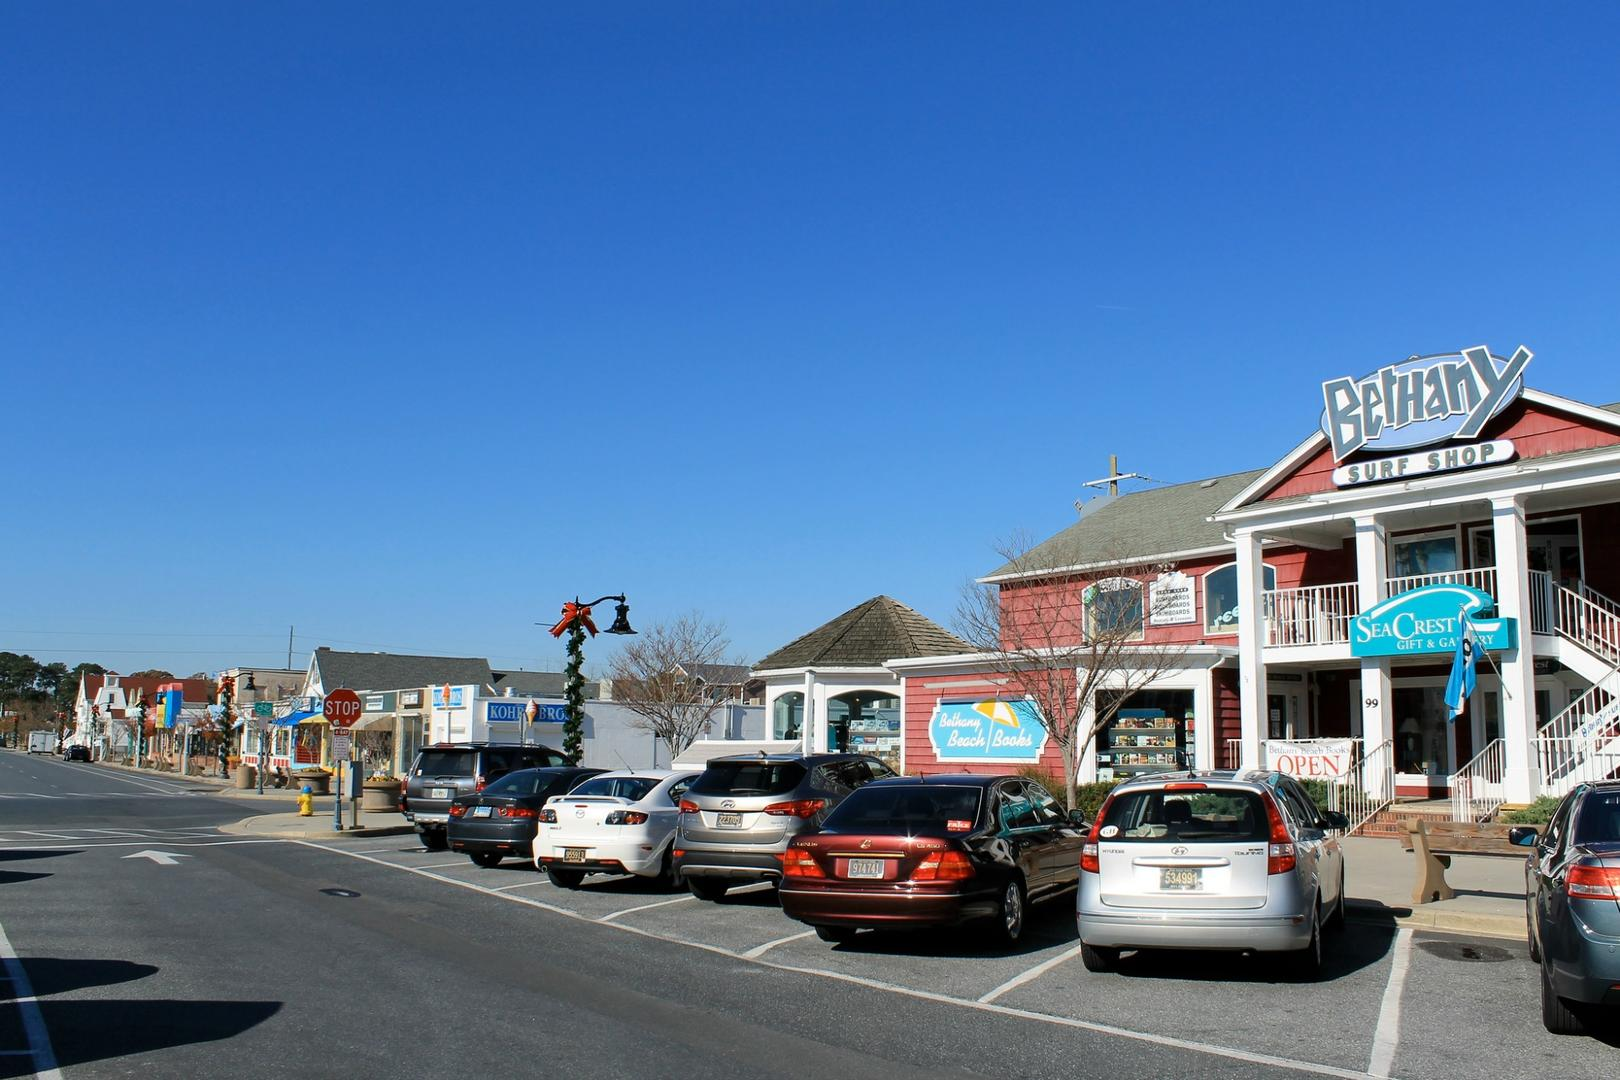 Nearby Town of Bethany Beach